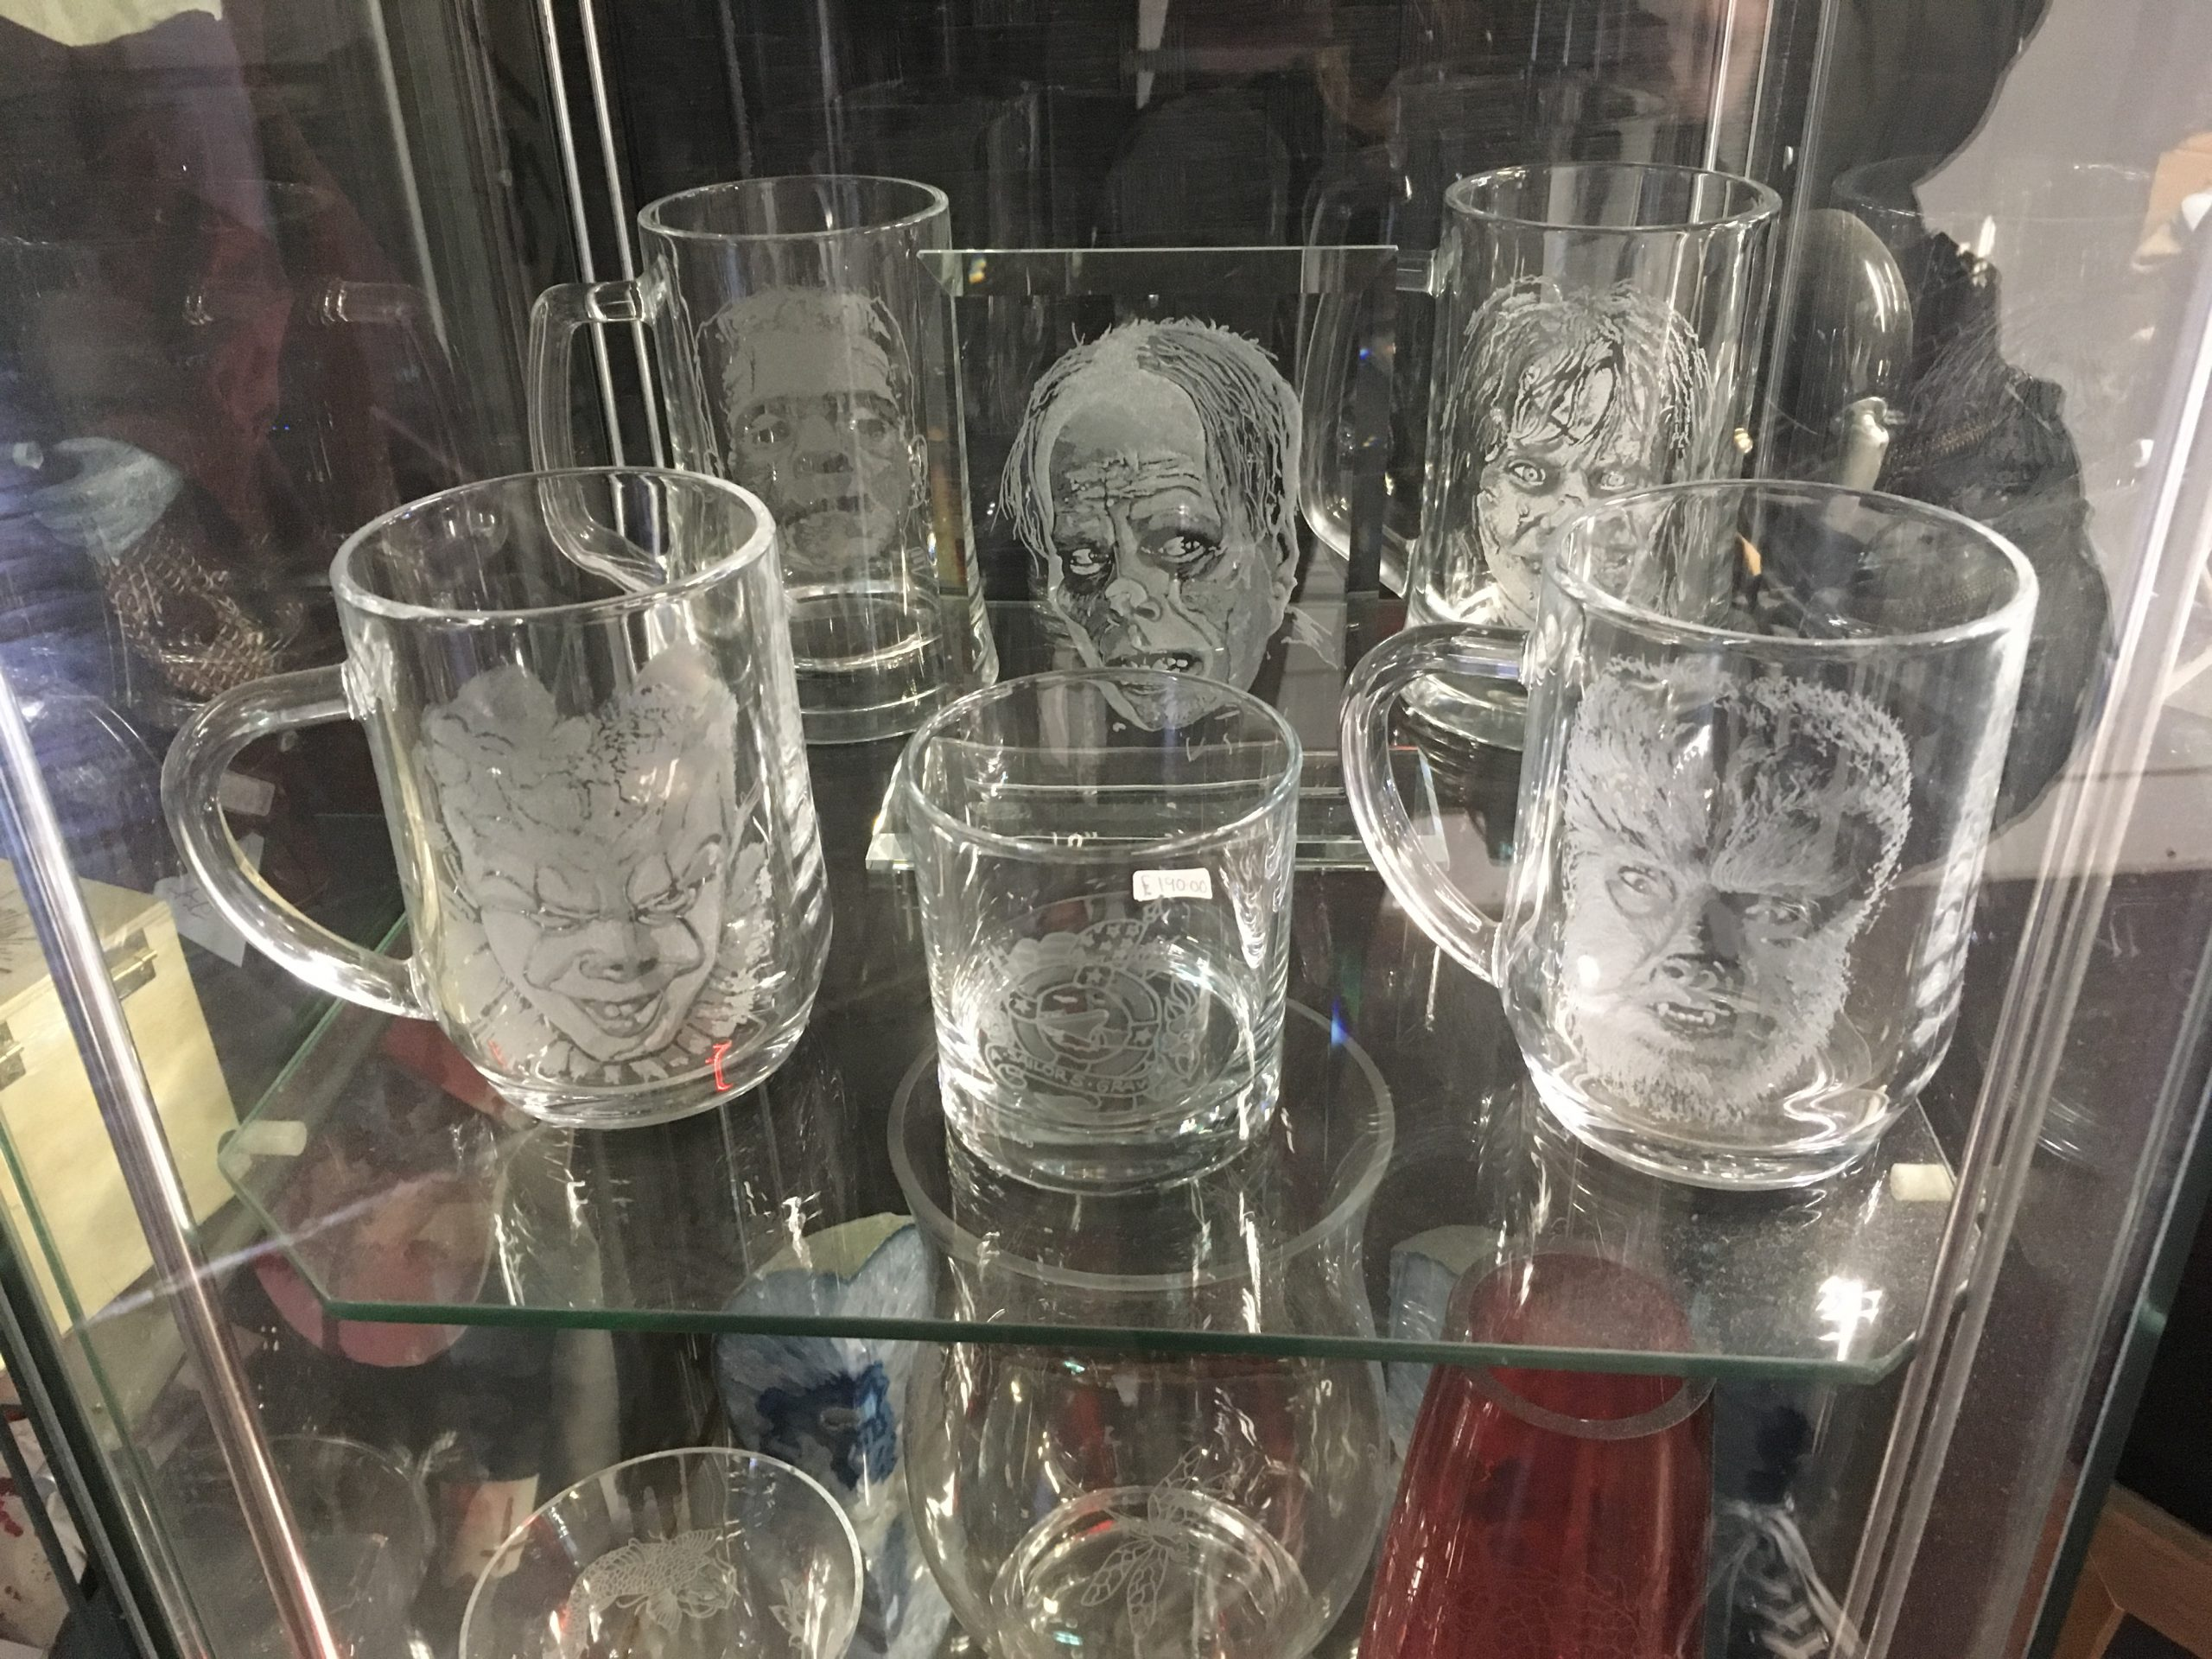 Engraved glasses with a variety of horror faces on them